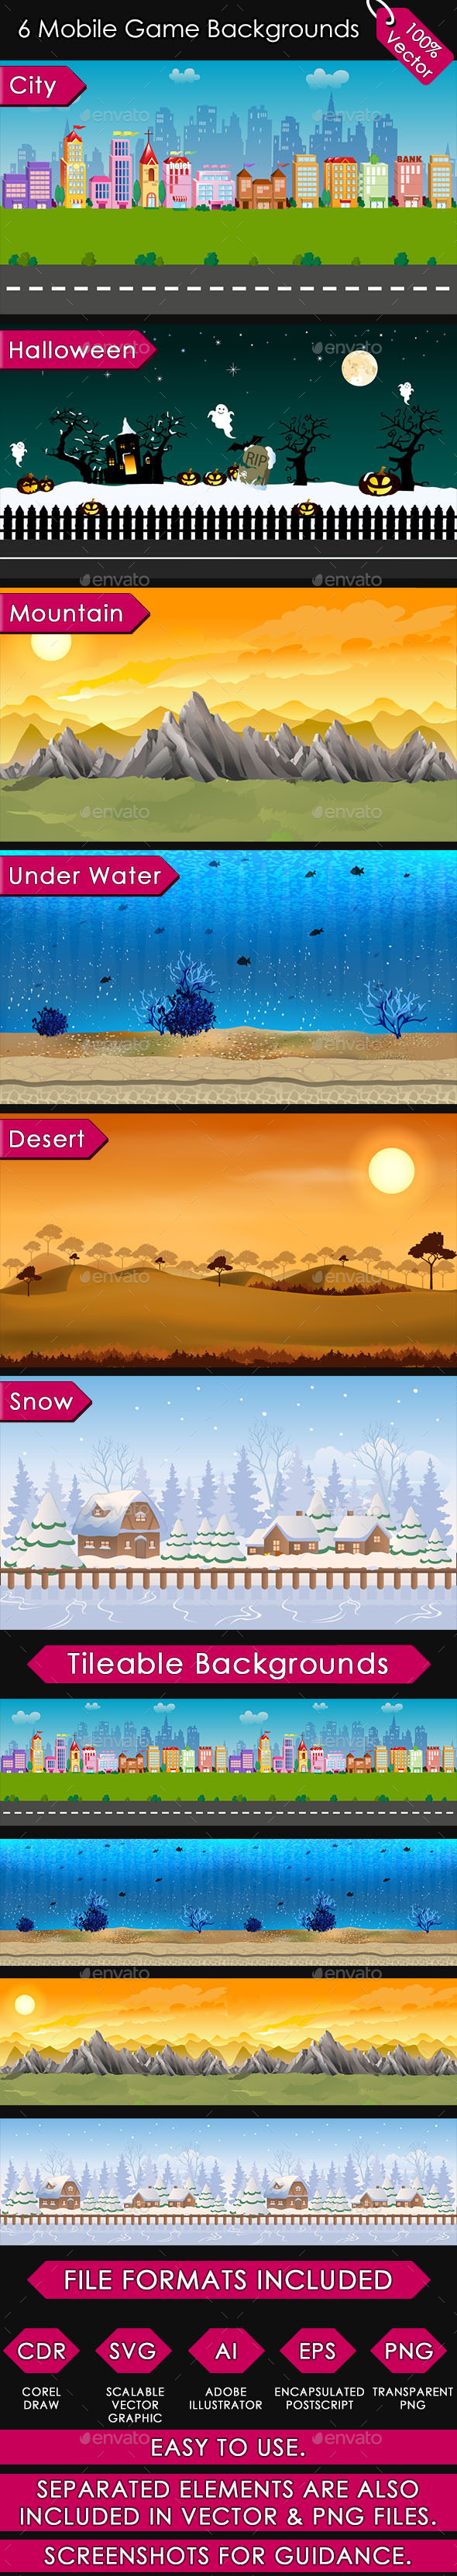 6 Mobile Game Backgrounds - User Interfaces Game Assets